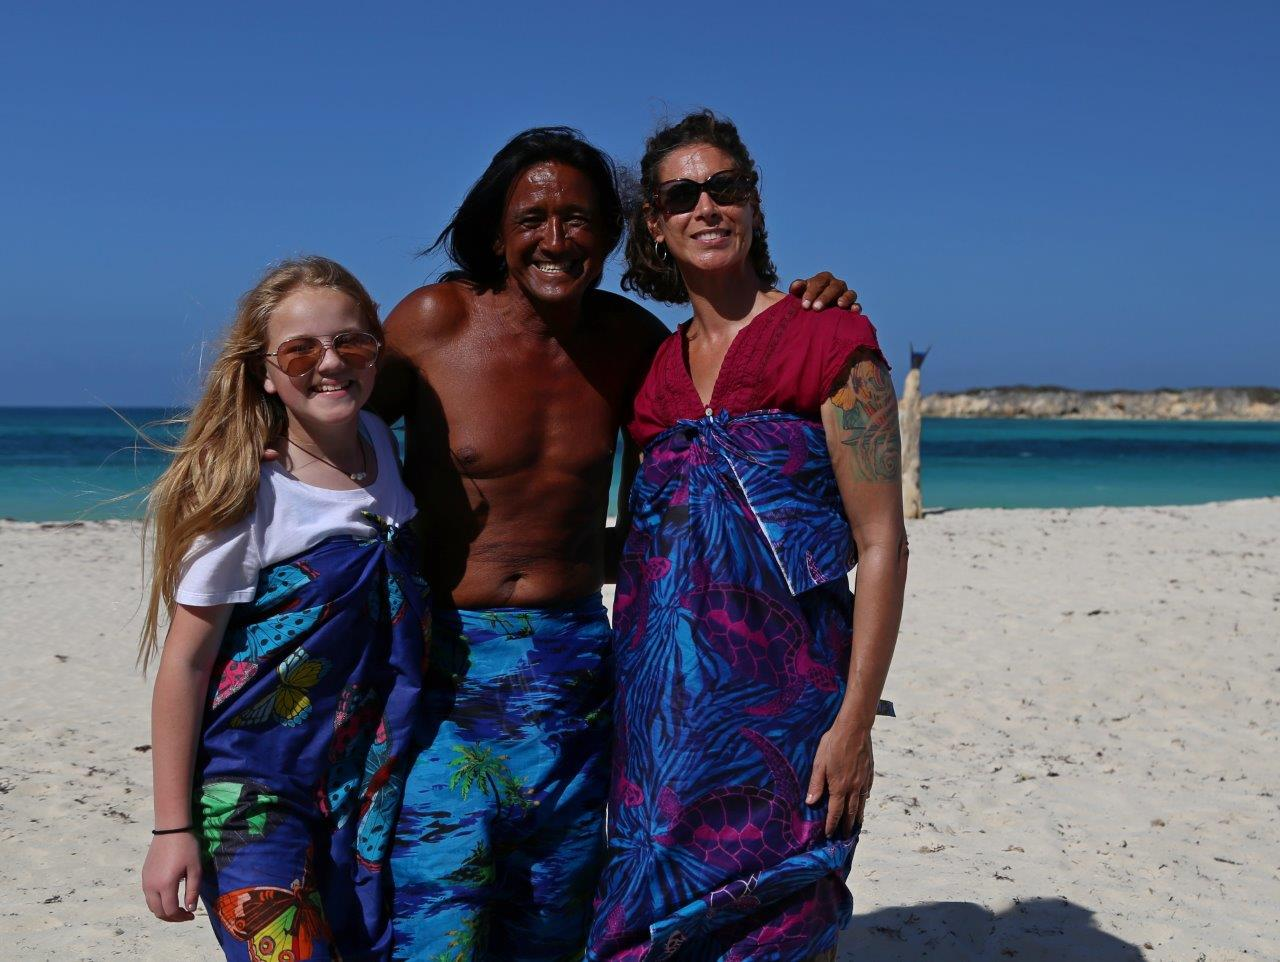 Audrey loved meeting Louie the sarong artist in Orient Beach